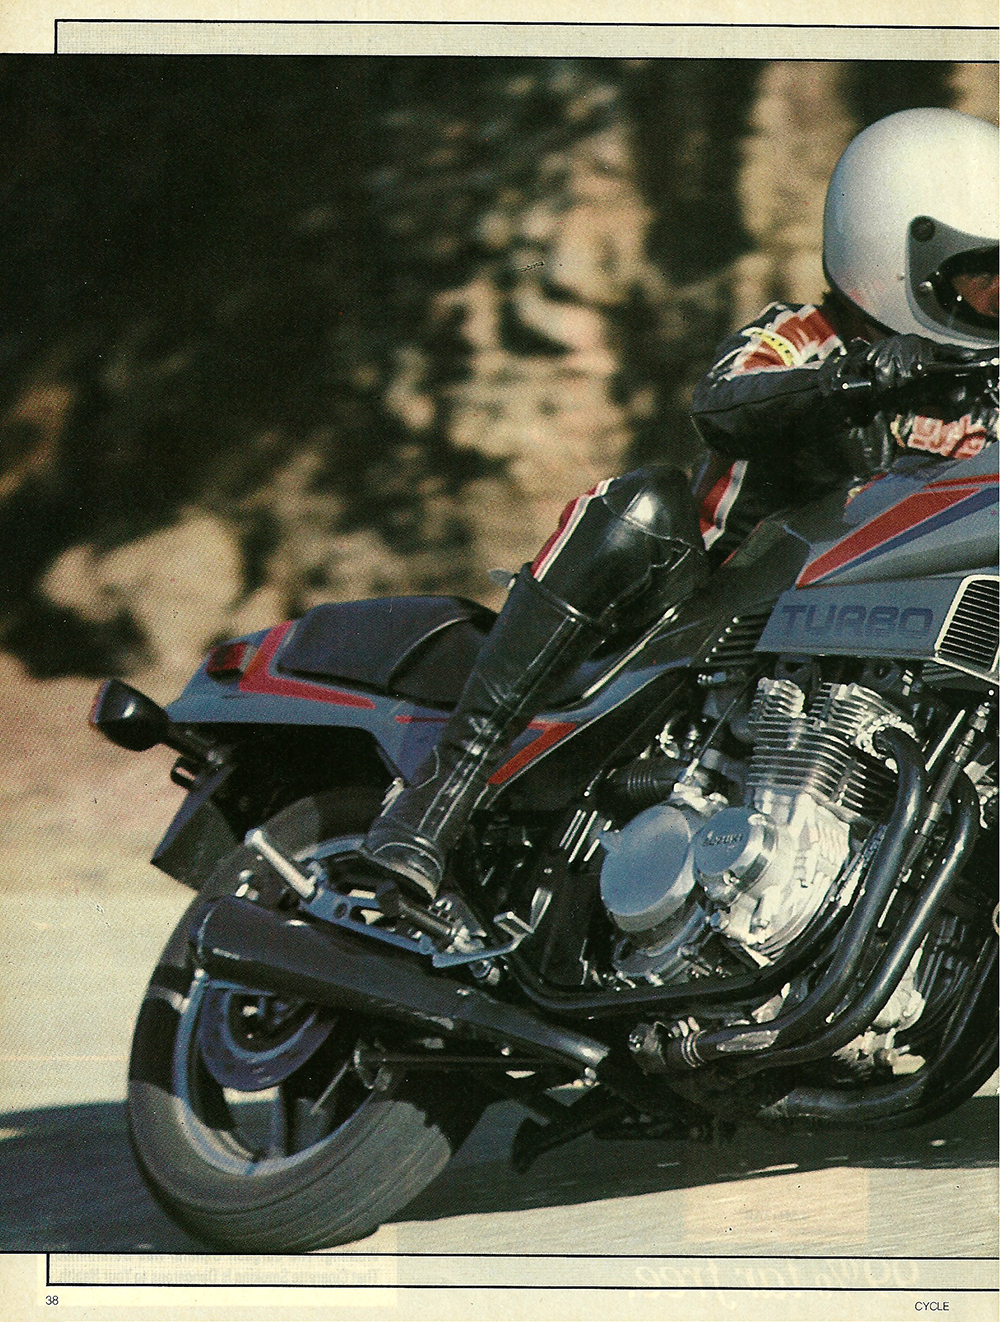 1983 Suzuki XN85 Turbo road test 1.jpg